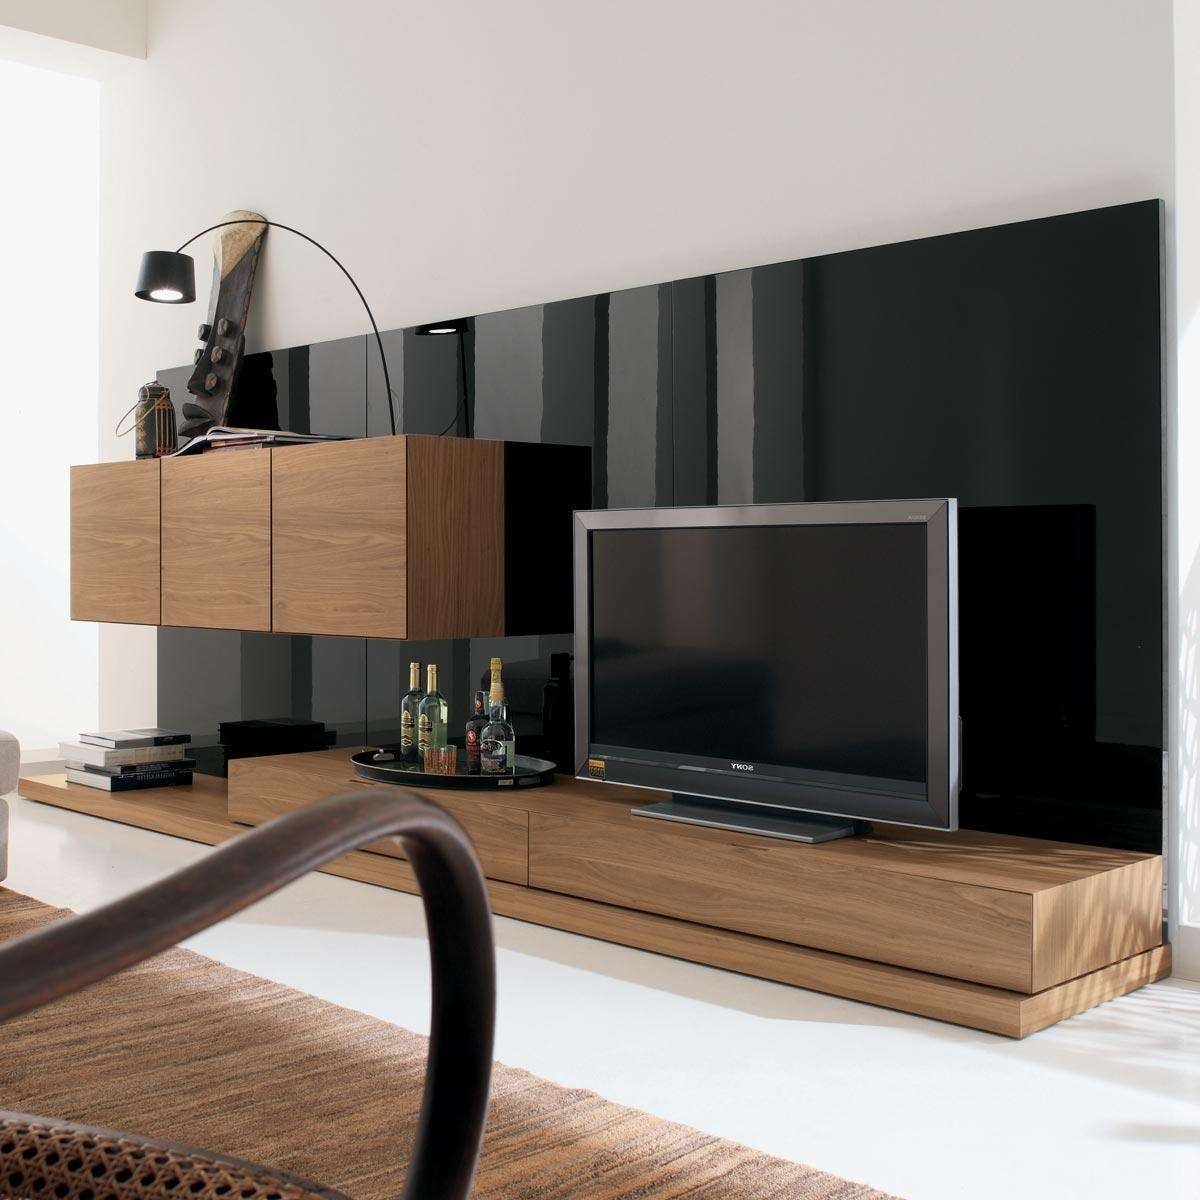 Modern Nature Wood Big Screen Tv Stand Wall Mounted Living Room With Regard To Modern Wooden Tv Stands (View 6 of 15)